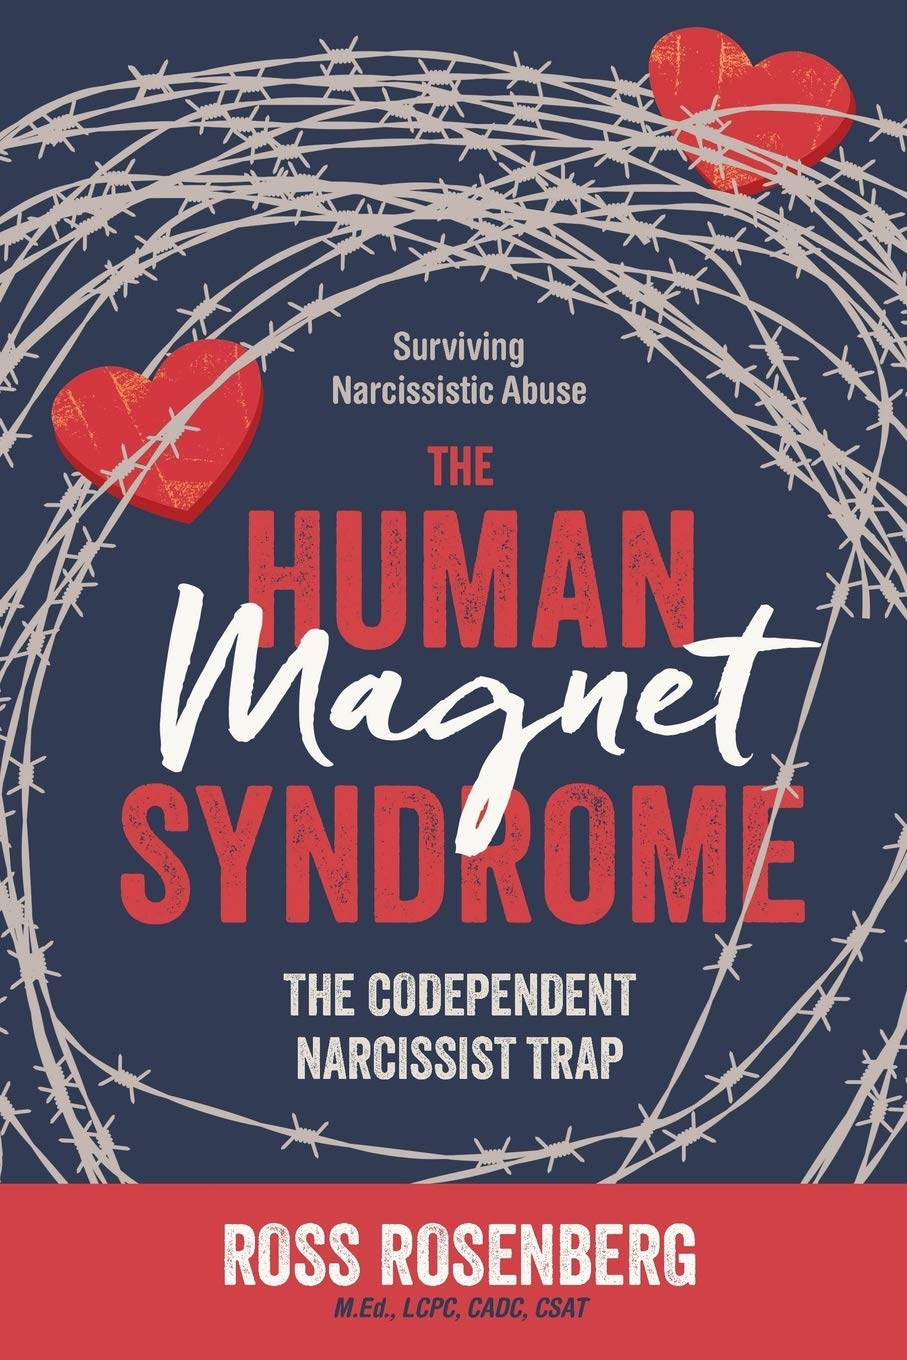 When a codependent leaves a narcissist